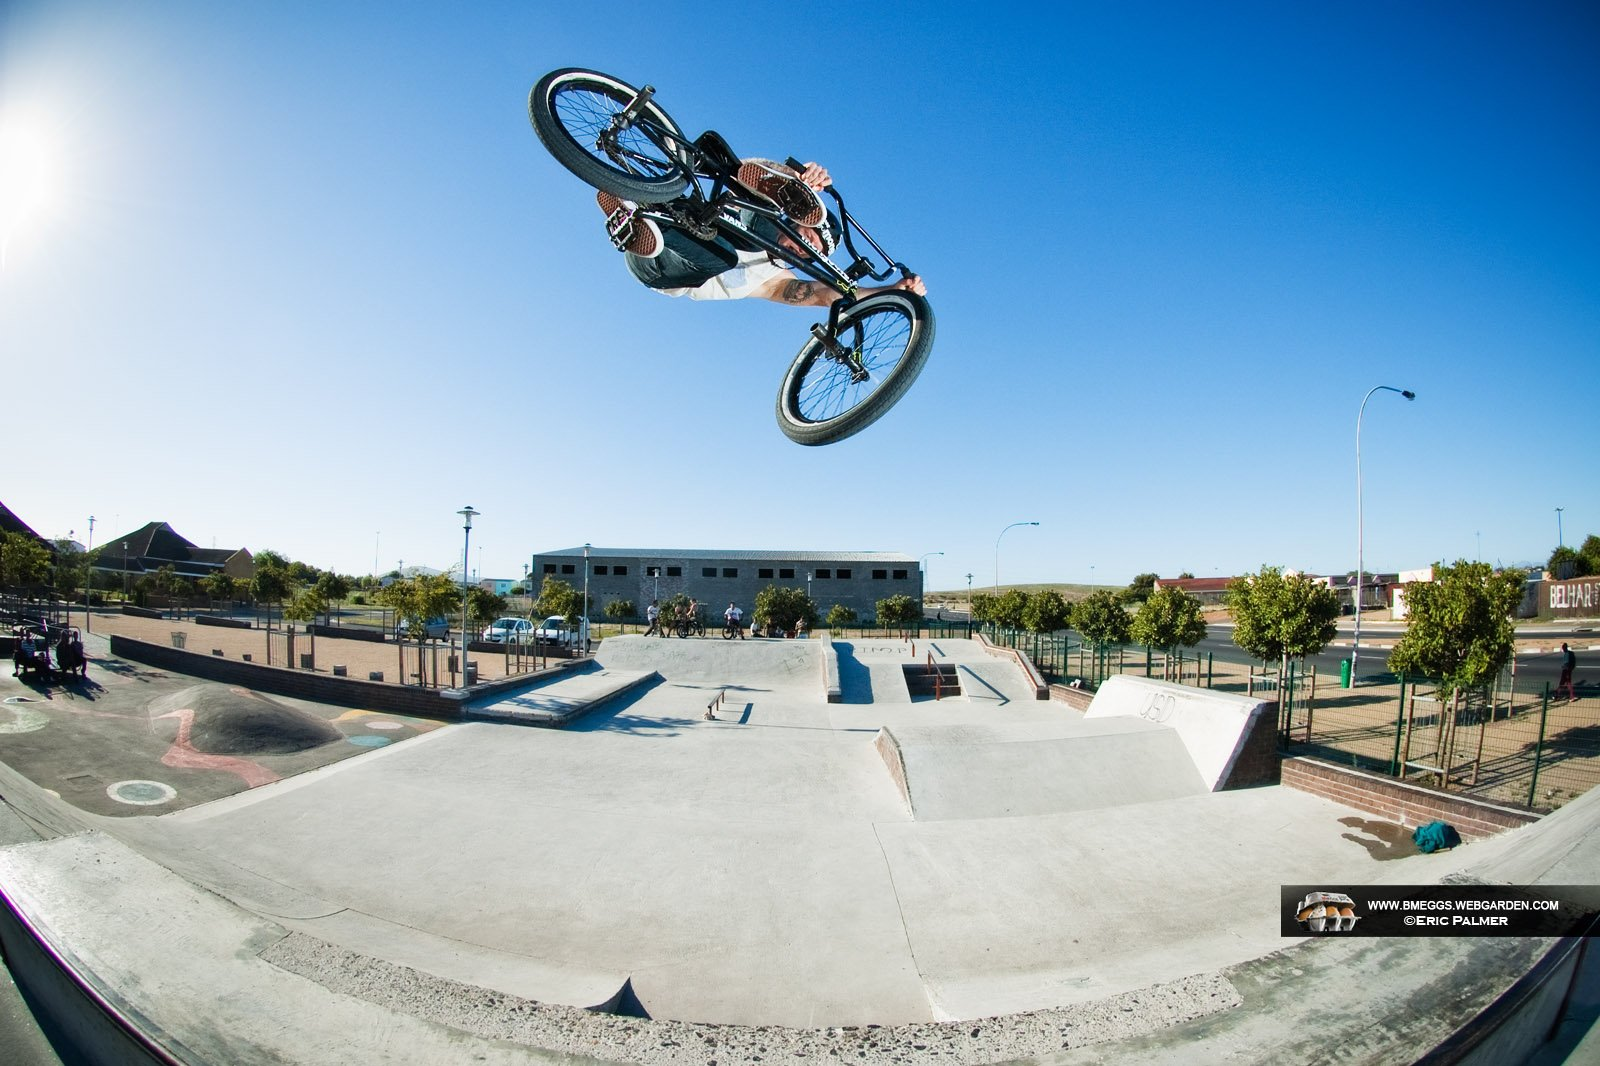 Steeze - Greg Illingworth